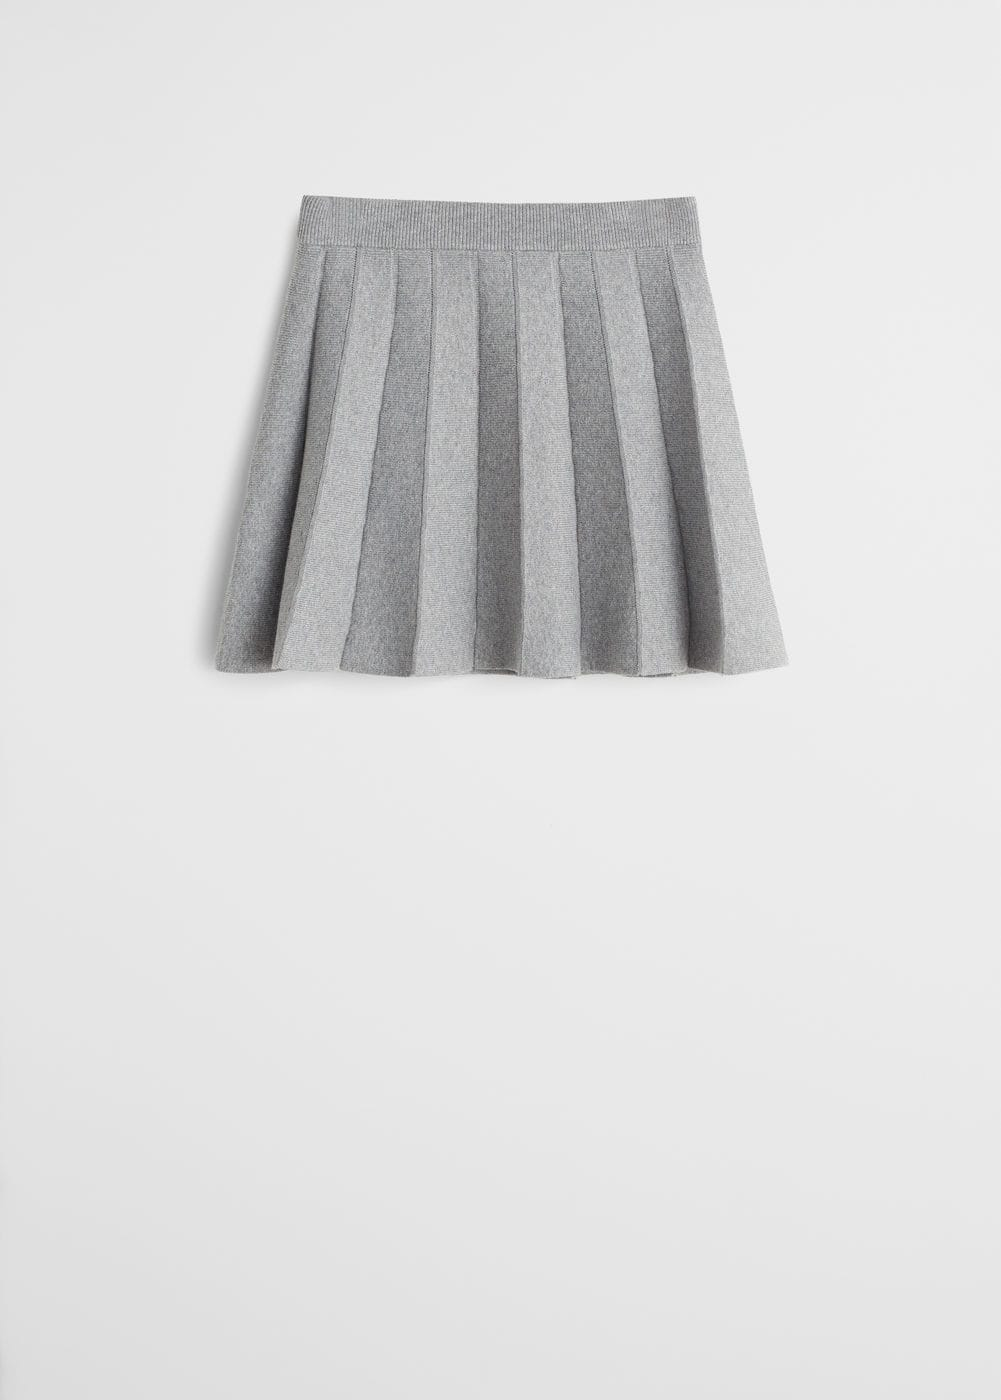 grande vendita 7c02a 33ede Pleated knit skirt